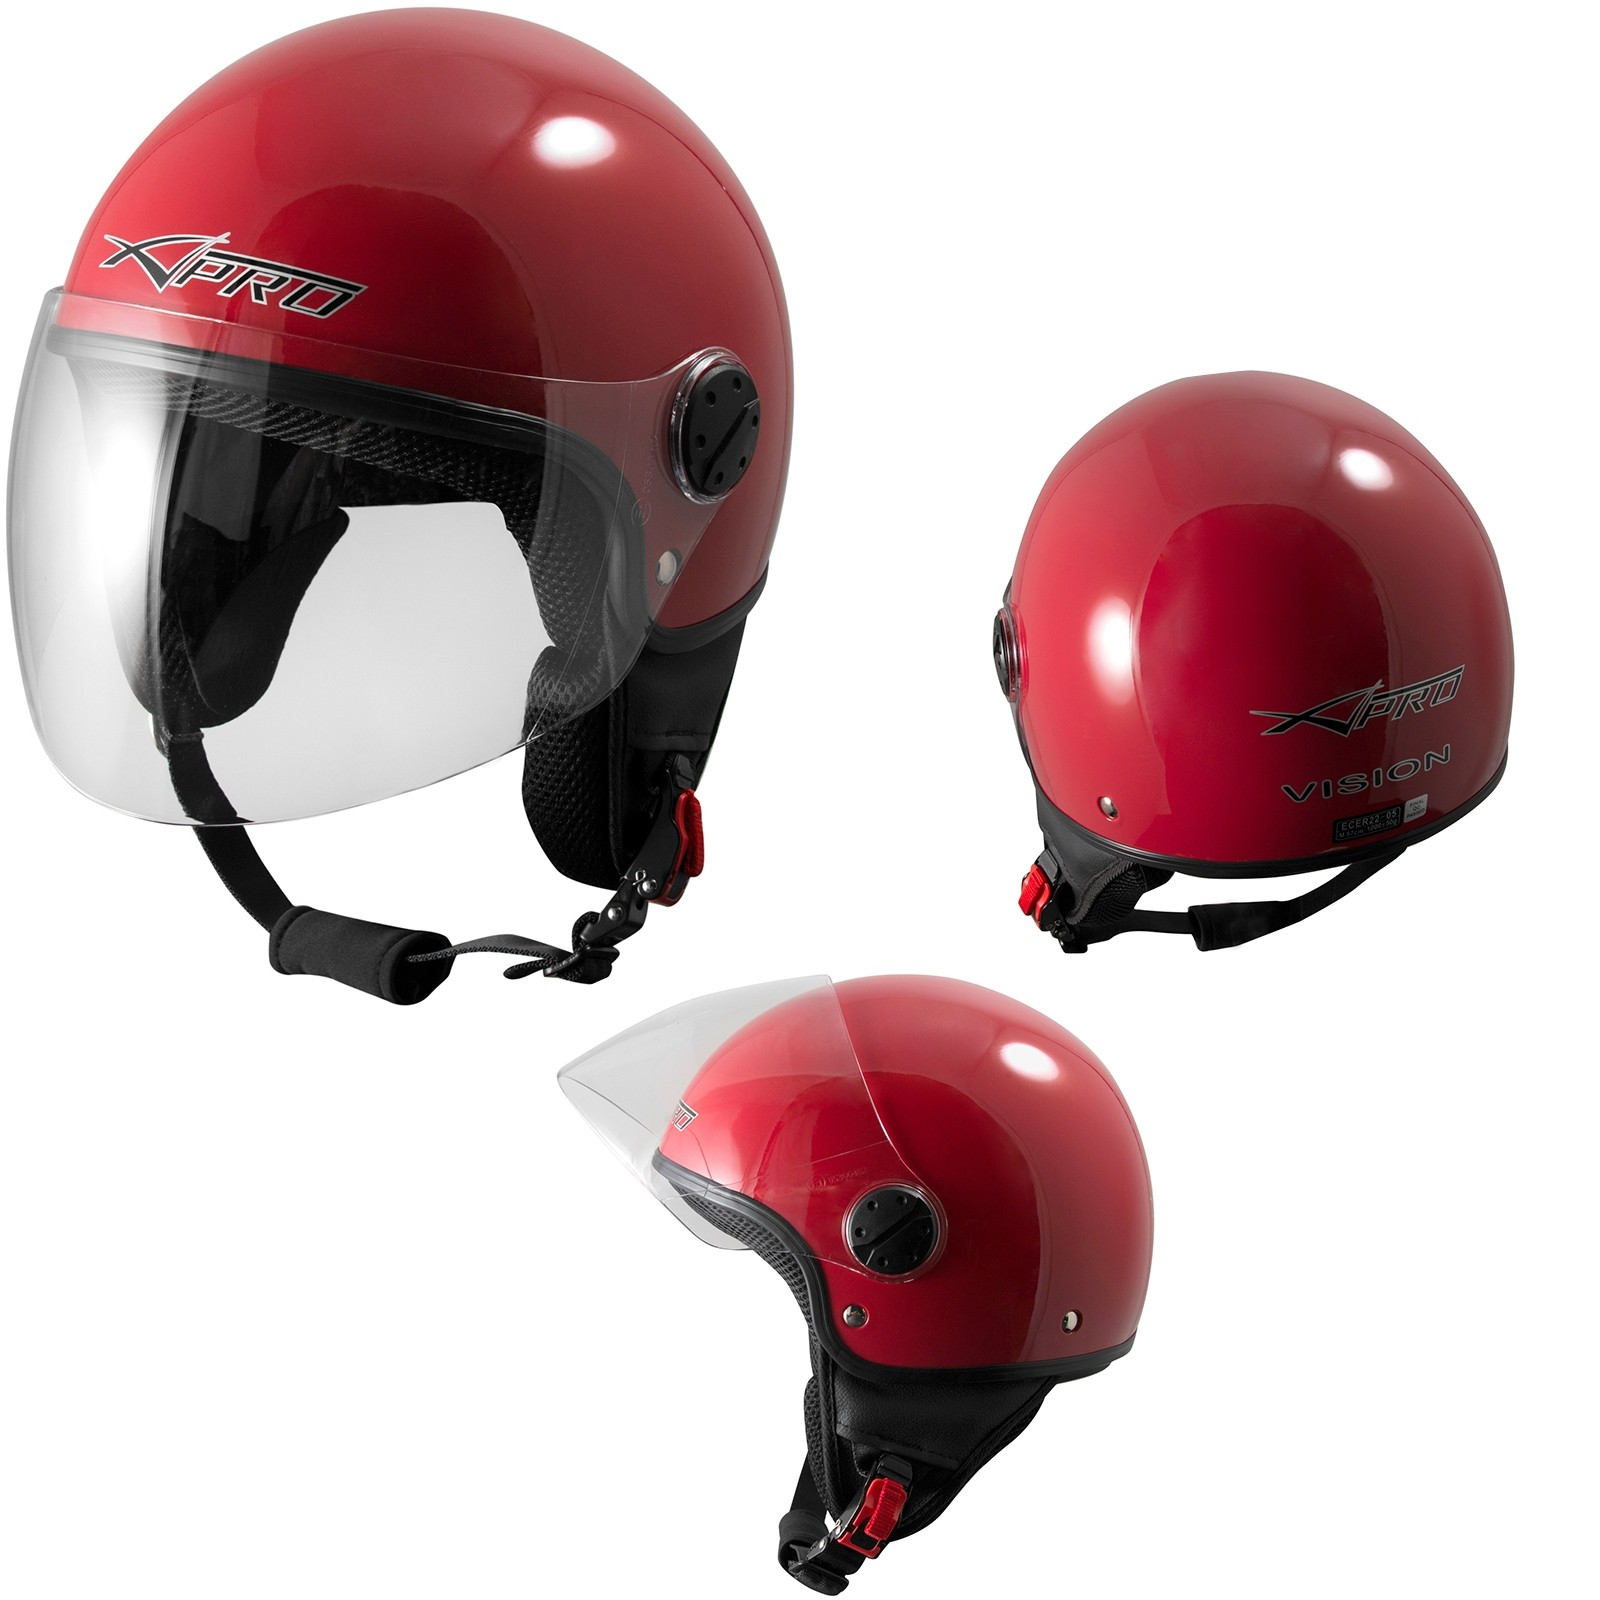 Vision-Jet-Casco-Helmet-Motorcycle-Red-Rosso-Sonic-Moto-A-Pro-Set